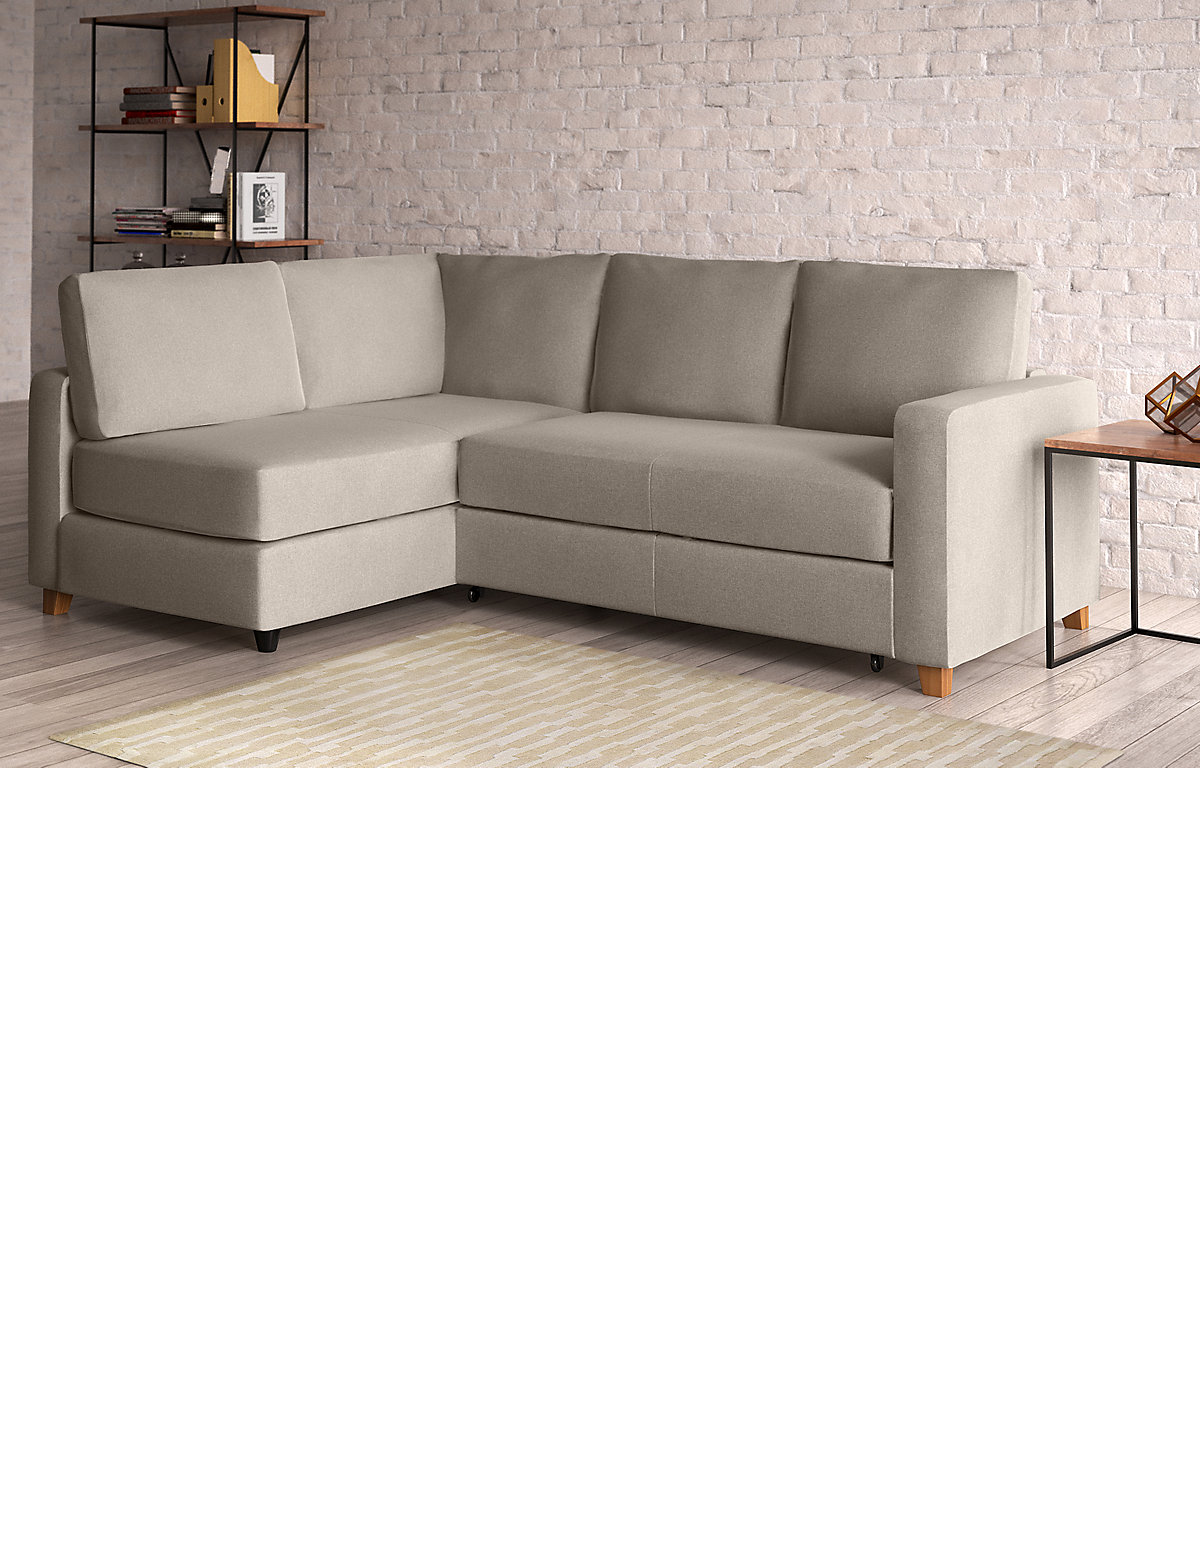 Corner chaise lounge sofa bed 100 space sofa sak corner for Argos chaise longue sofa bed